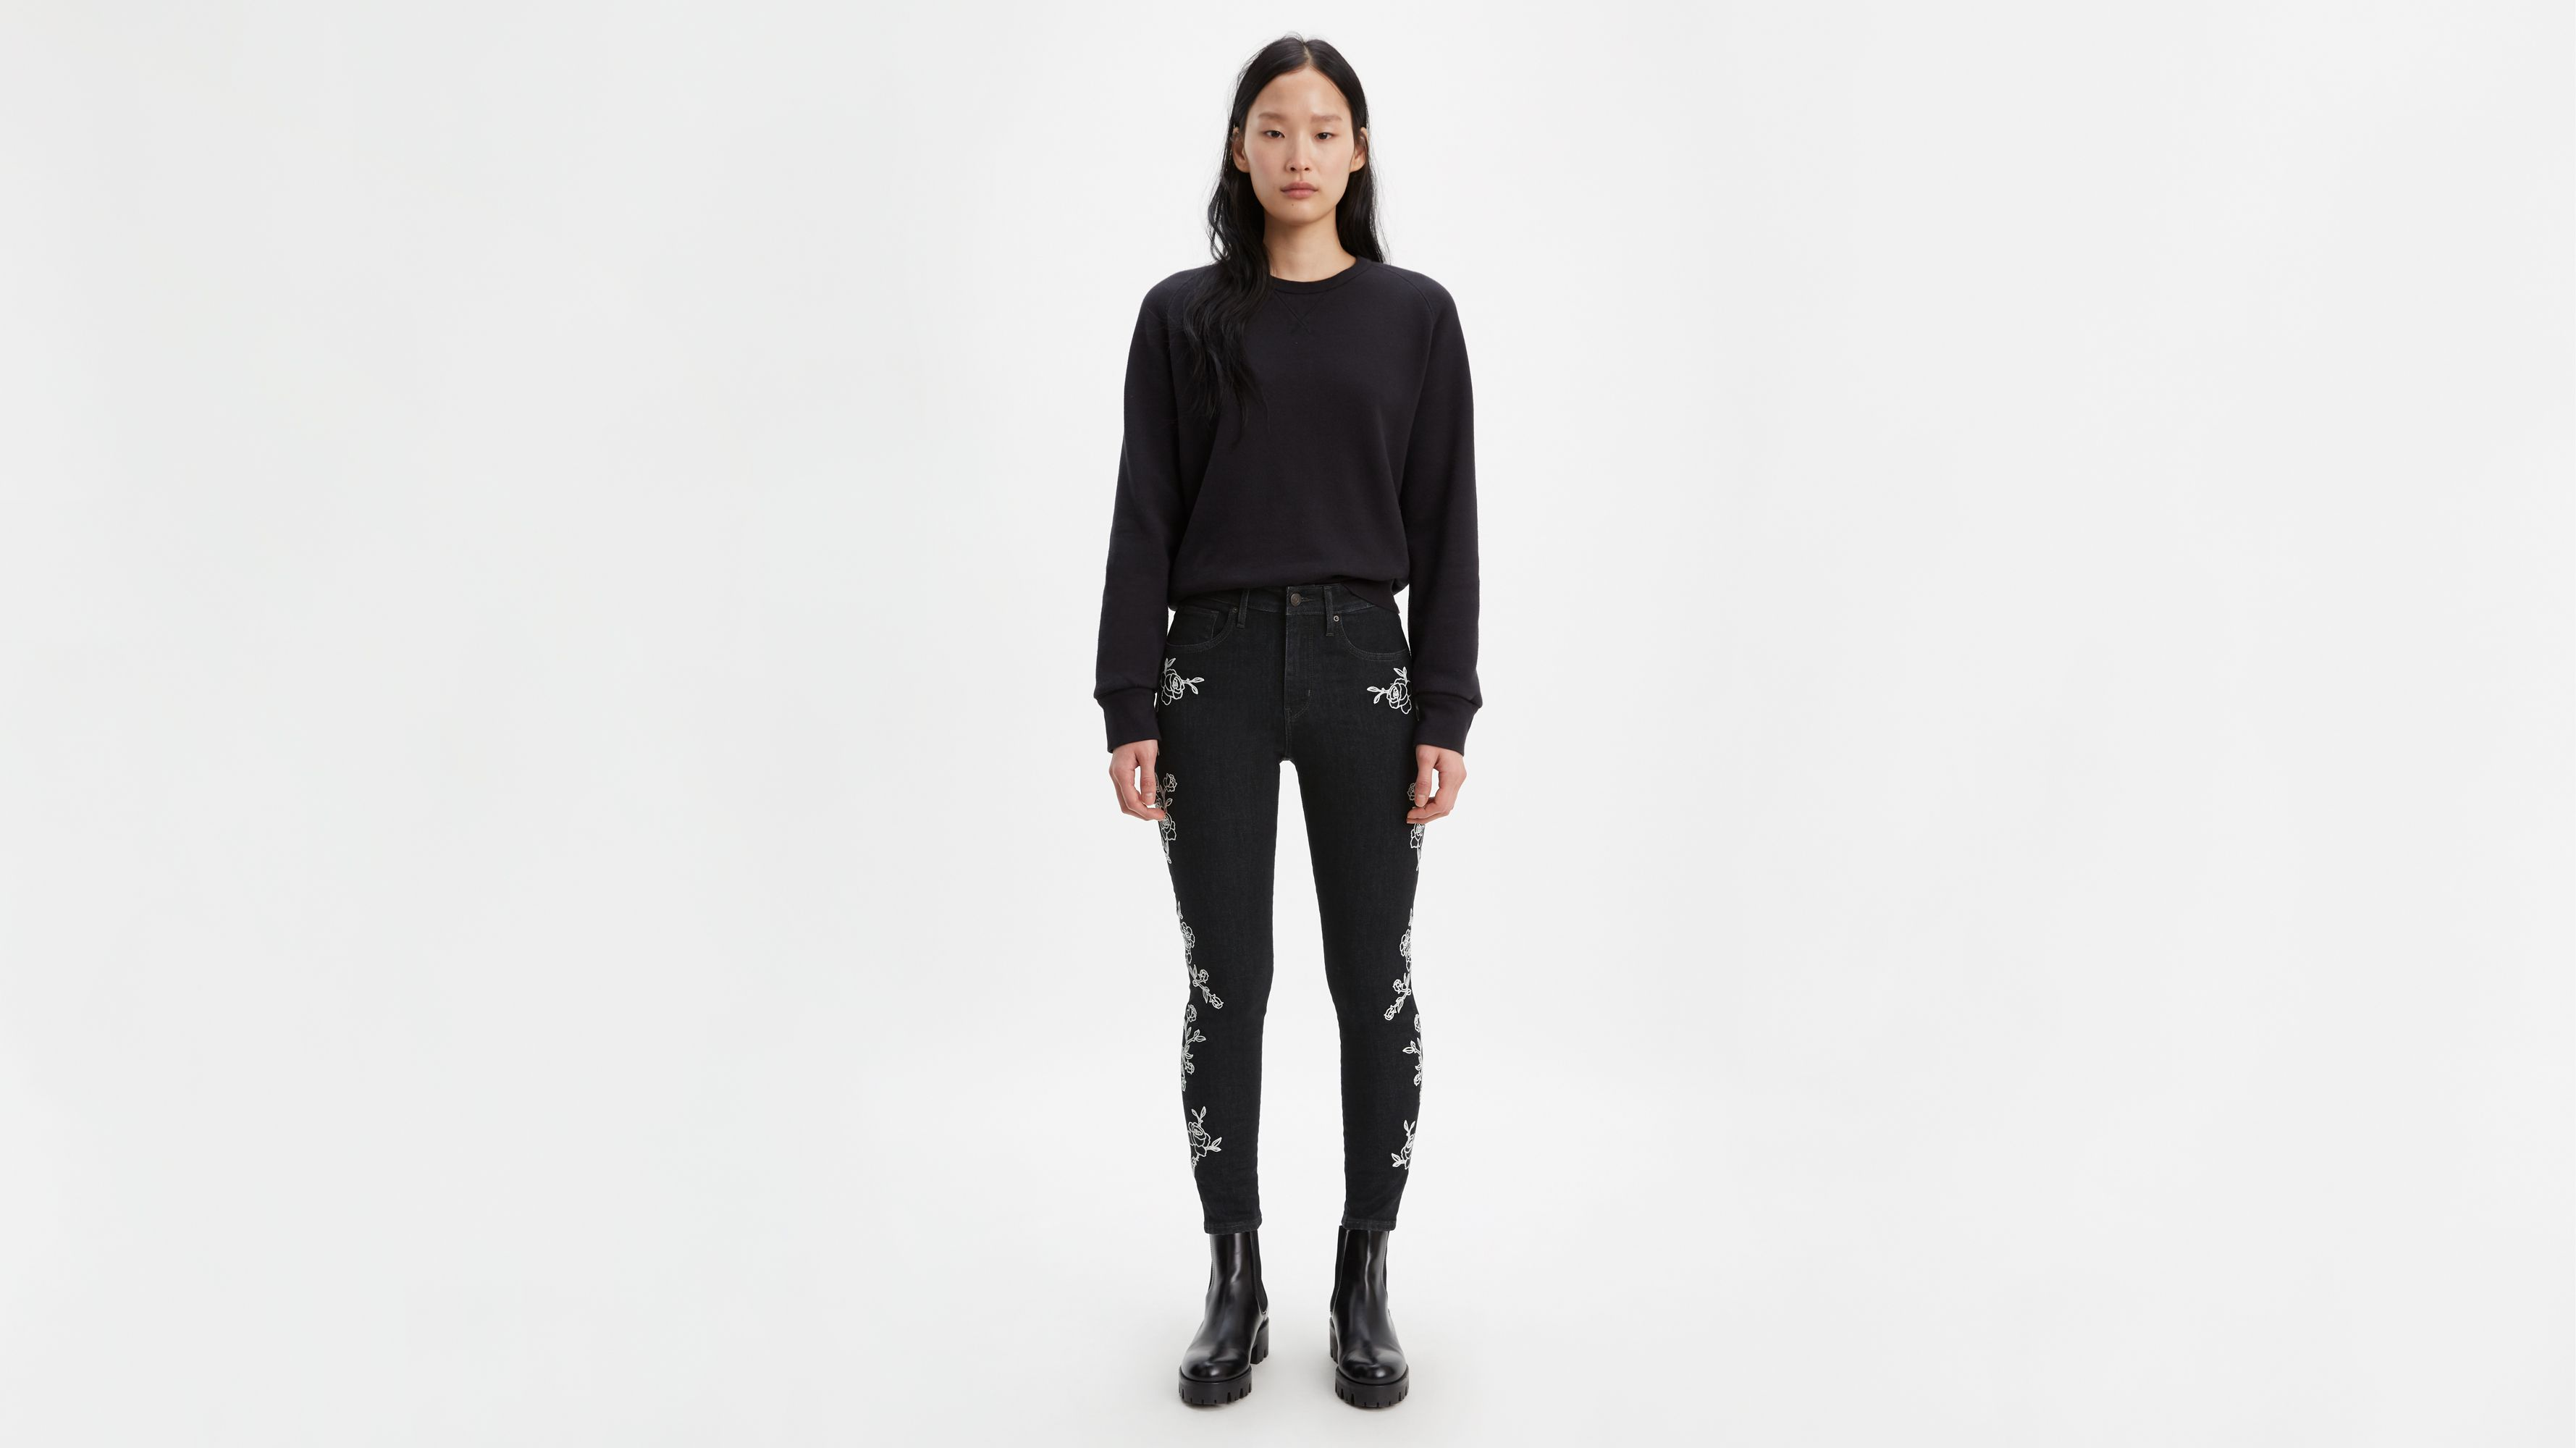 721 High Rise Embroidered Ankle Skinny Women's Jeans